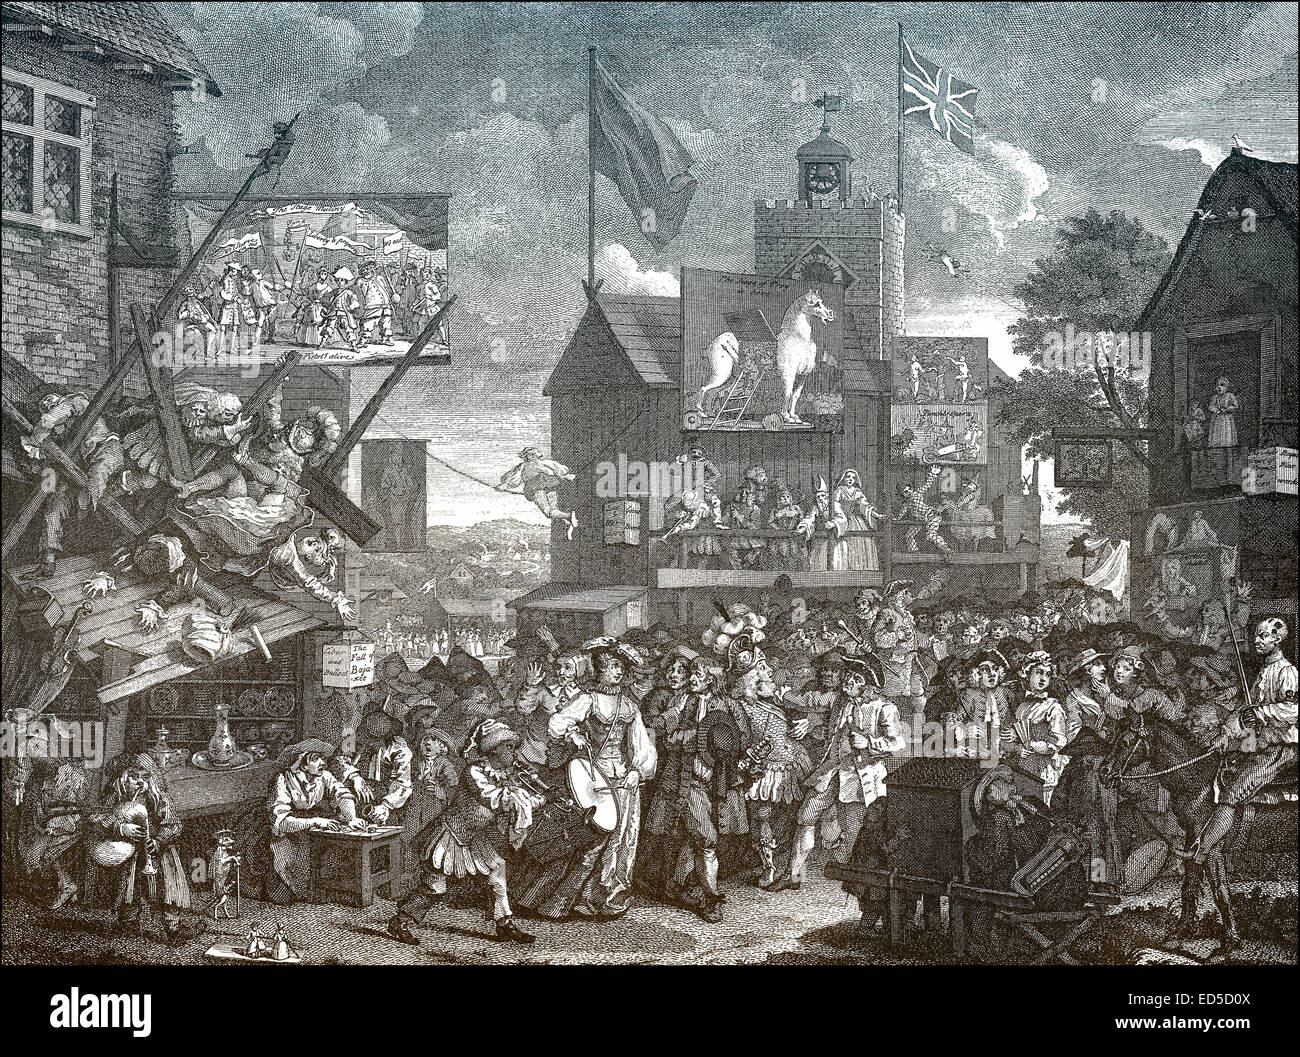 Southwark fair, London, by William Hogarth, 1697 - 1764, an English painter, printmaker, pictorial satirist, social - Stock Image